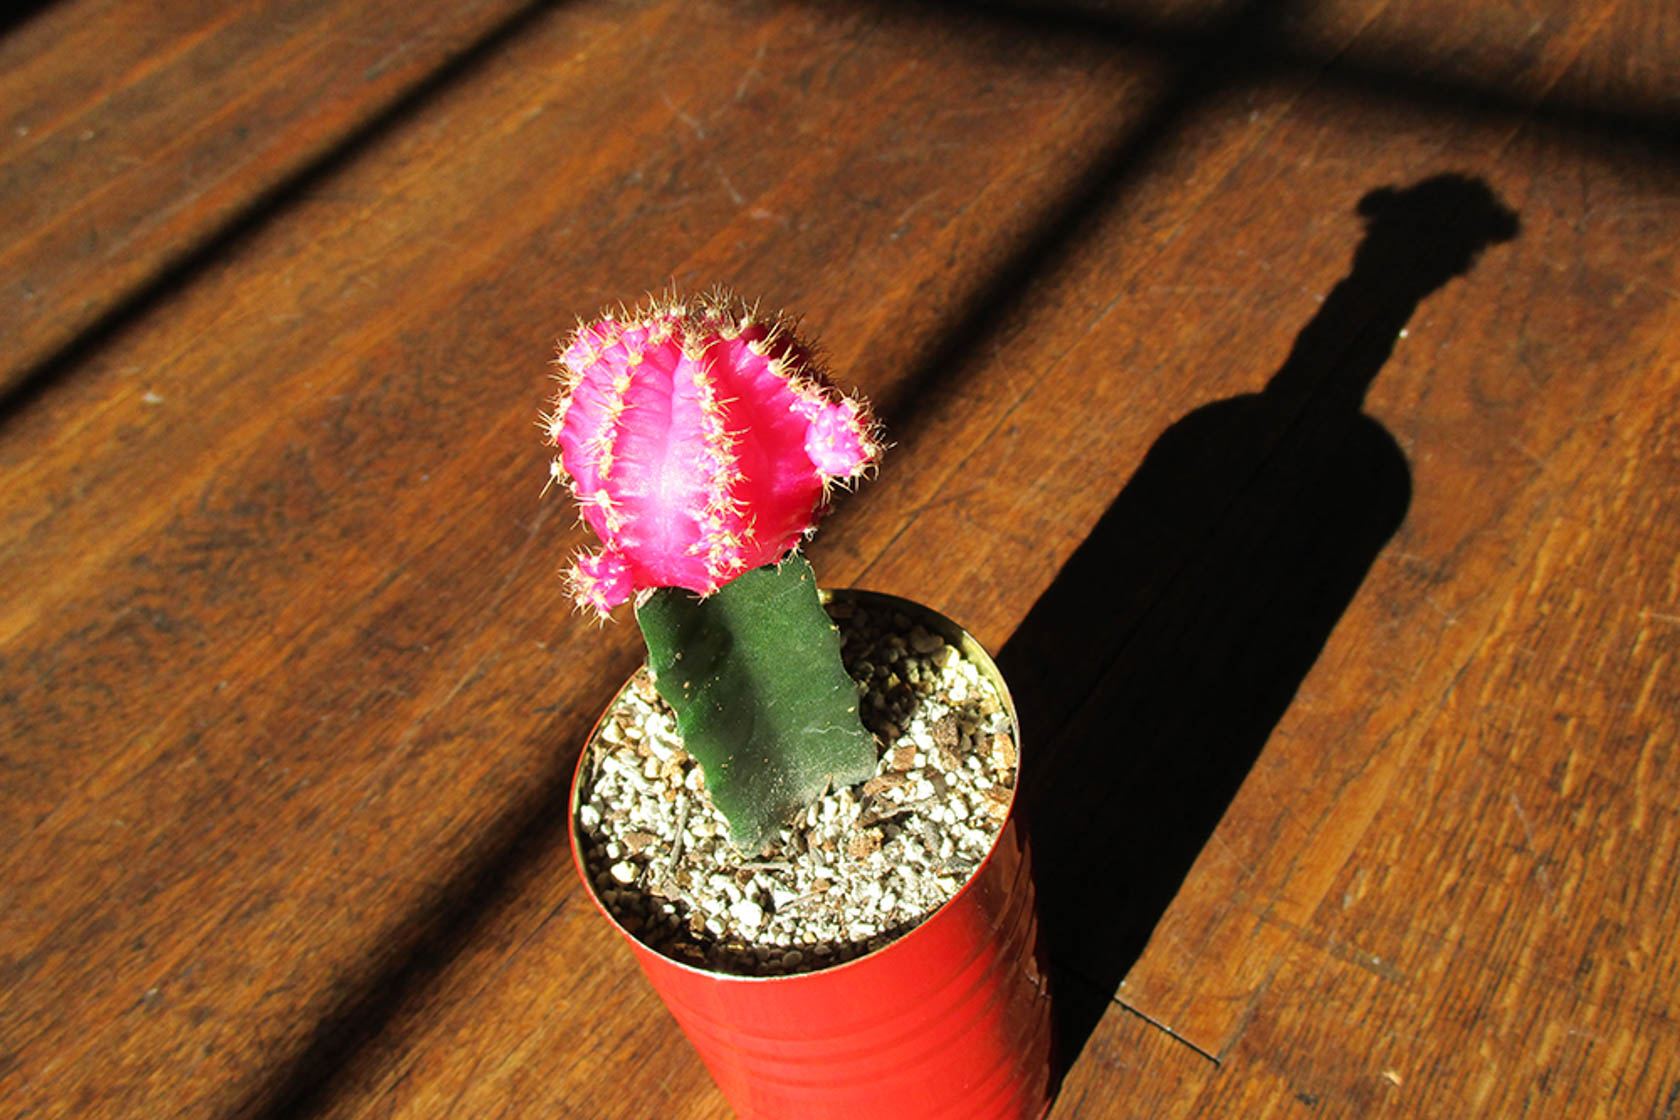 Image of a cactus with a pink top shot on the IXUS 180